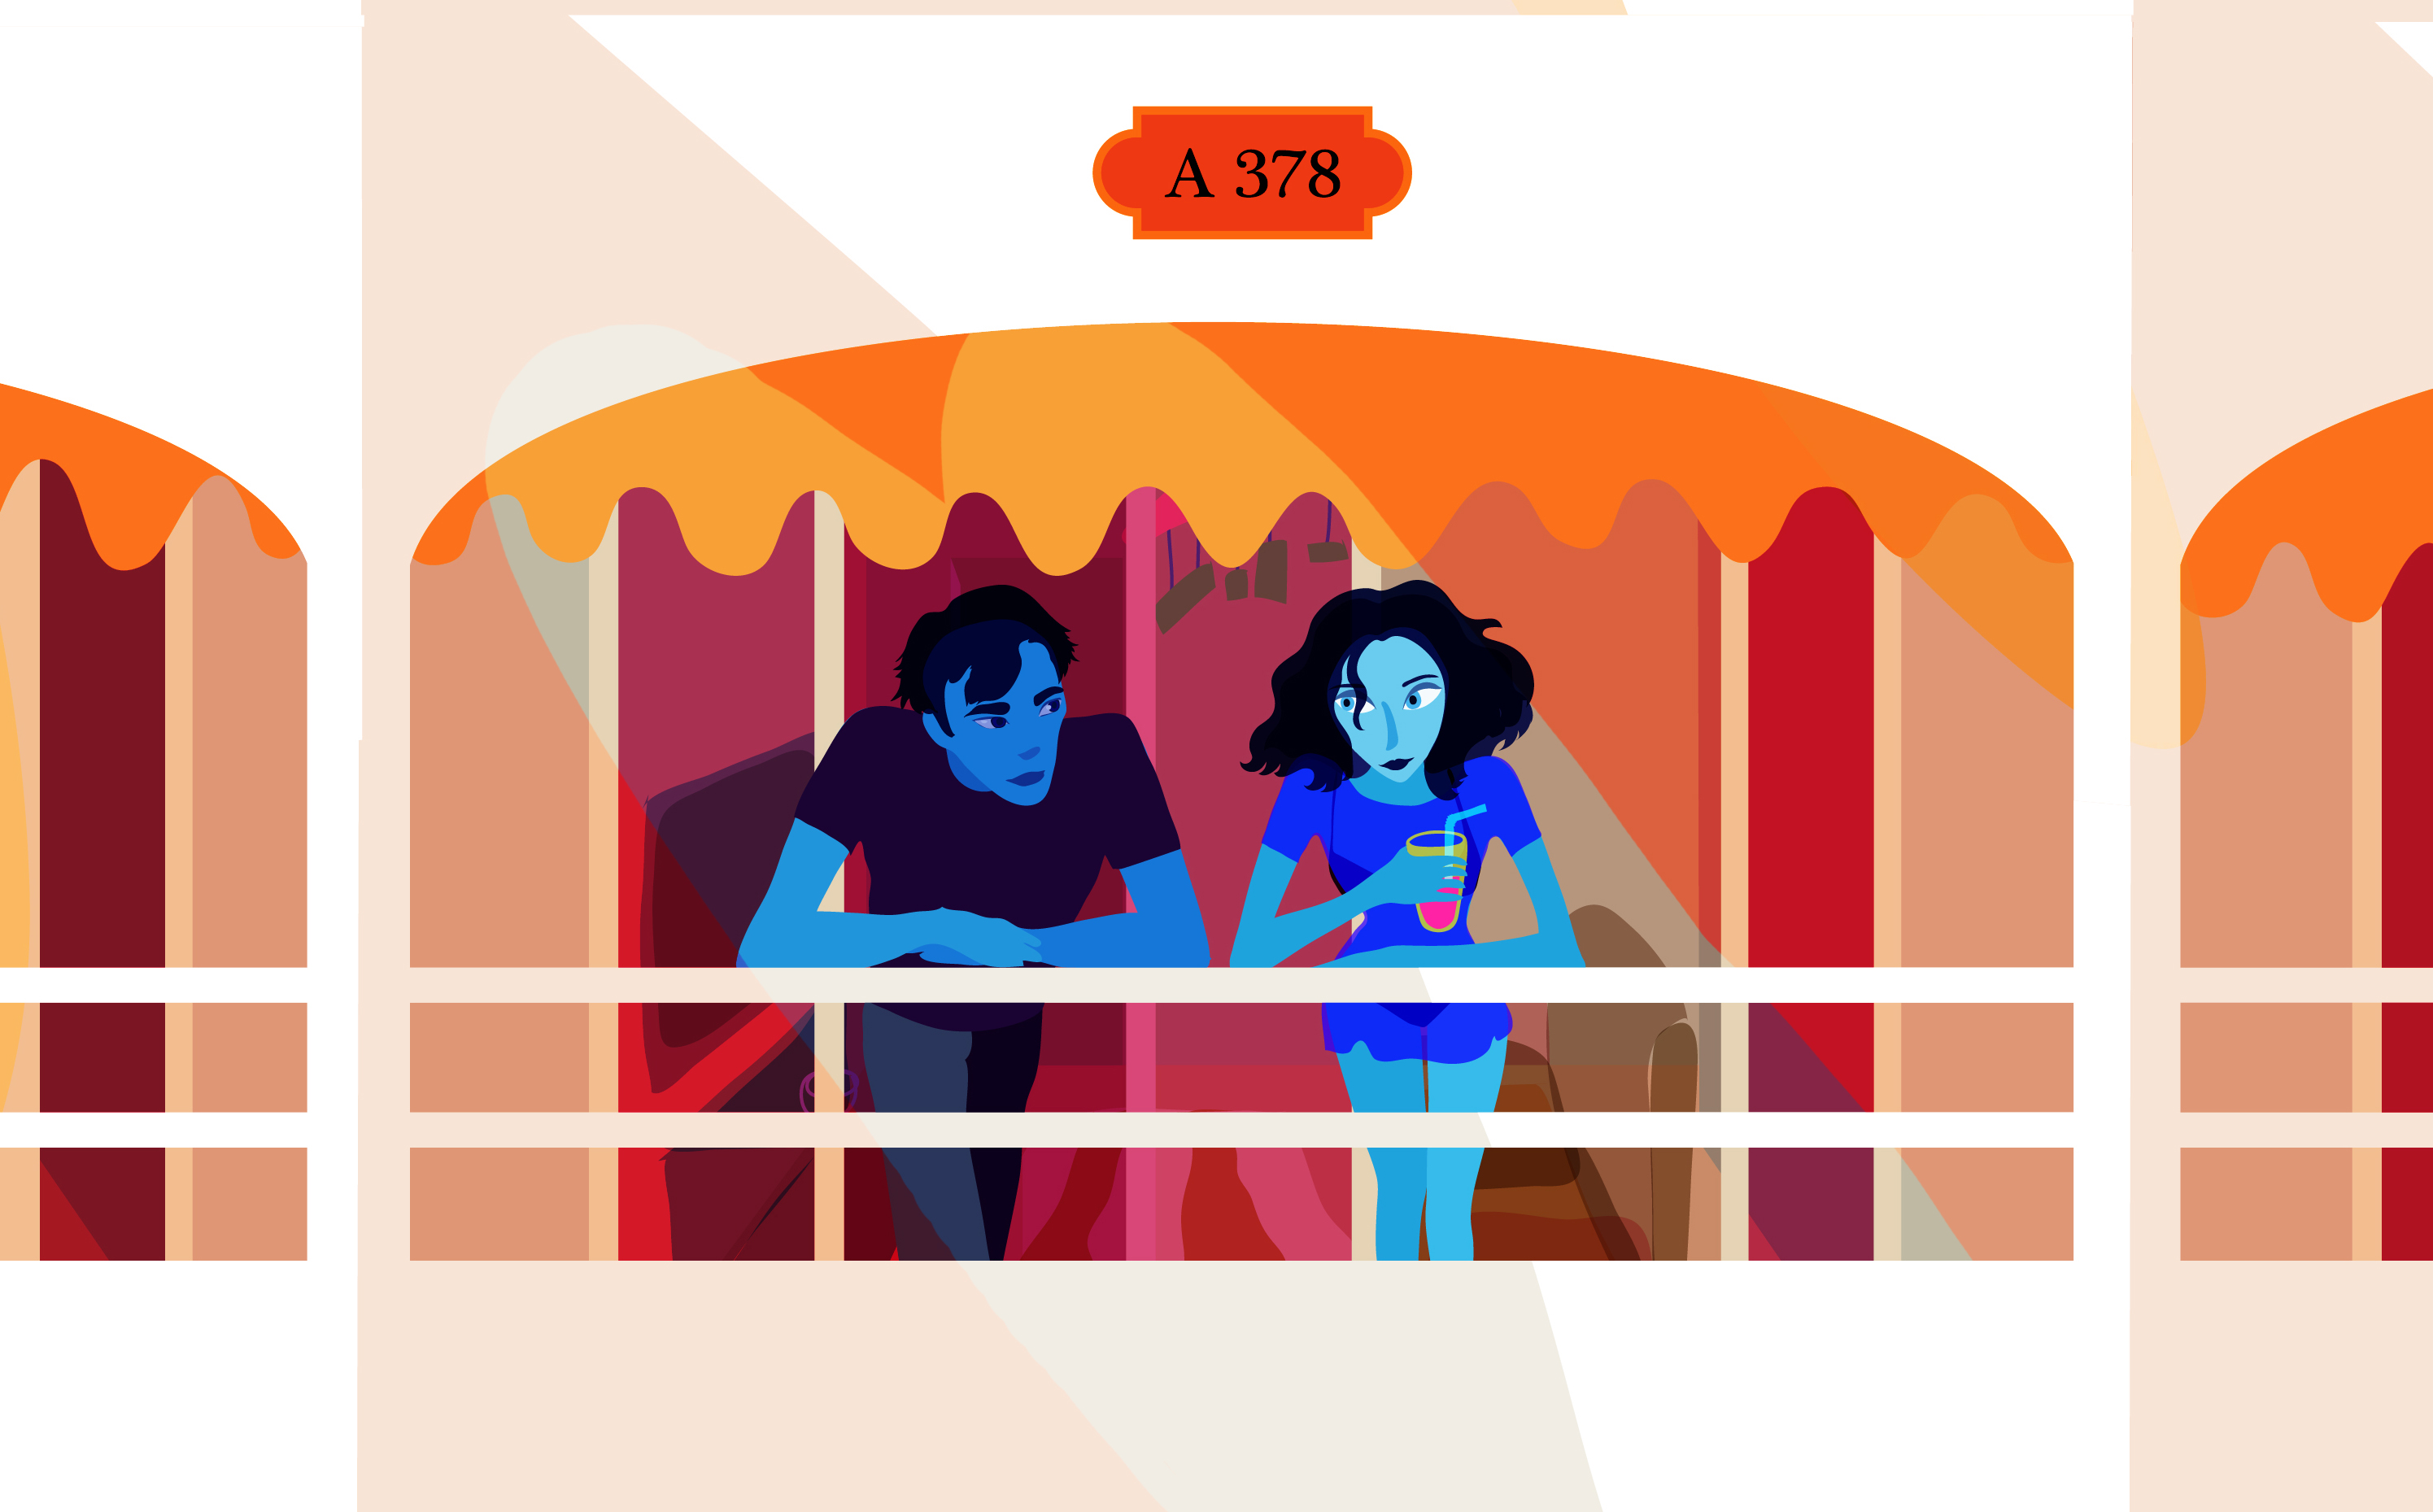 mélodie bloo hot date chalet balcony rosane chawi young love illustrator vector art illustration summer heat